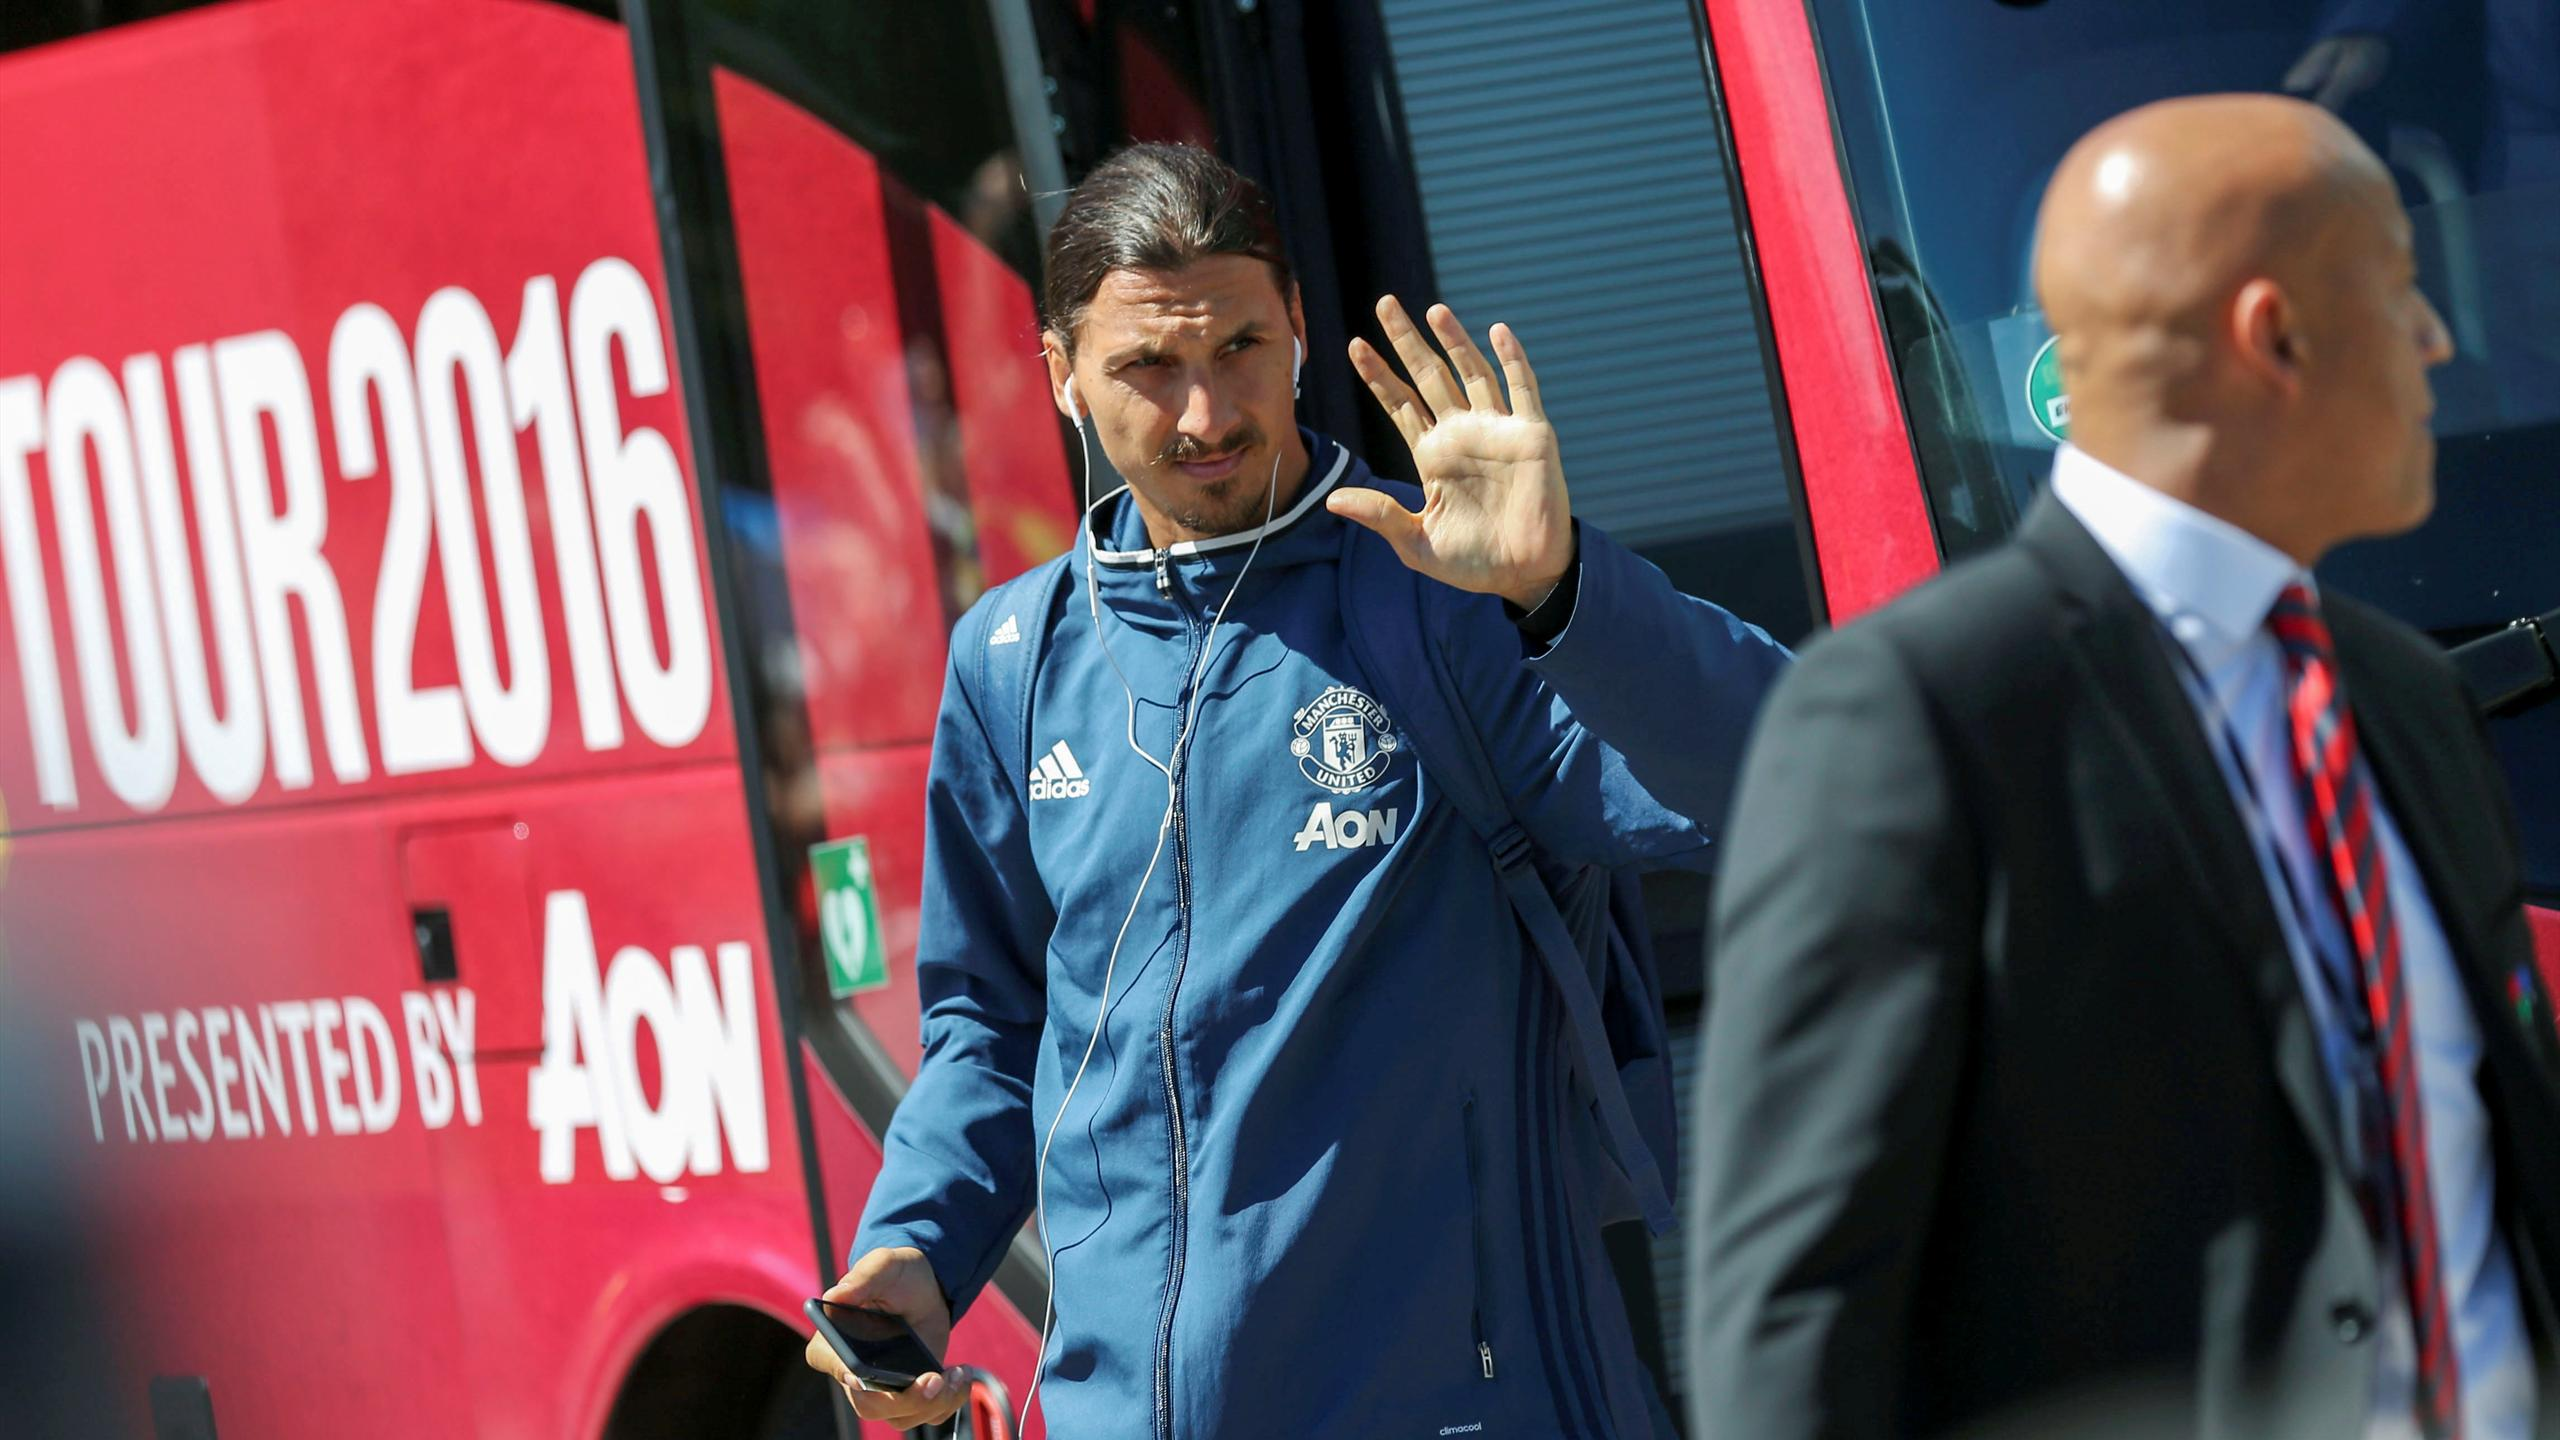 Manchester United's striker Zlatan Ibrahimovic exits the team's bus in front of a hotel in Goteborg, Sweden